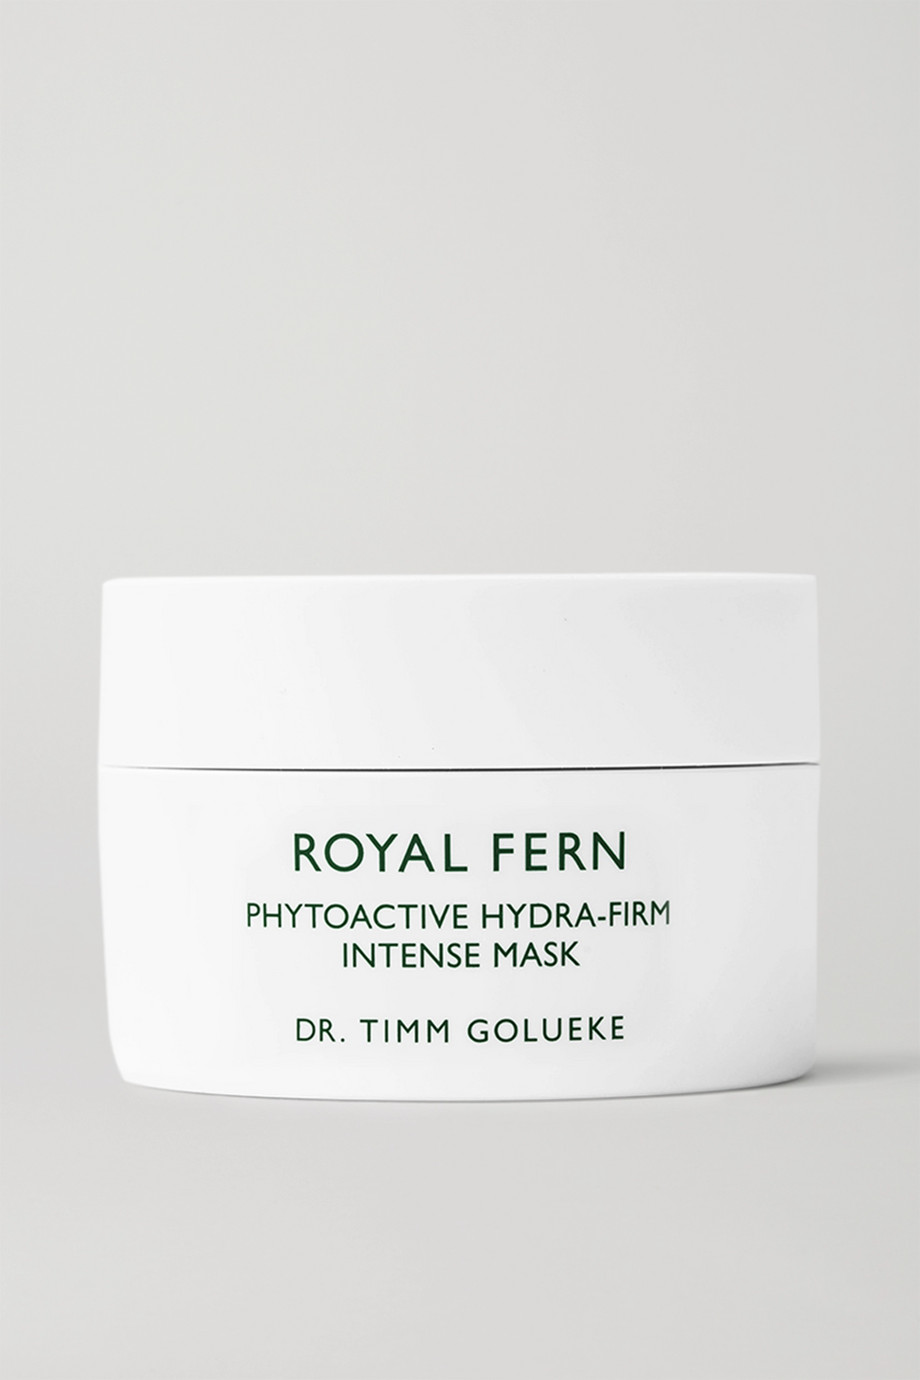 ROYAL FERN Phytoactive Hydra-Firm Intense Mask, 50ml